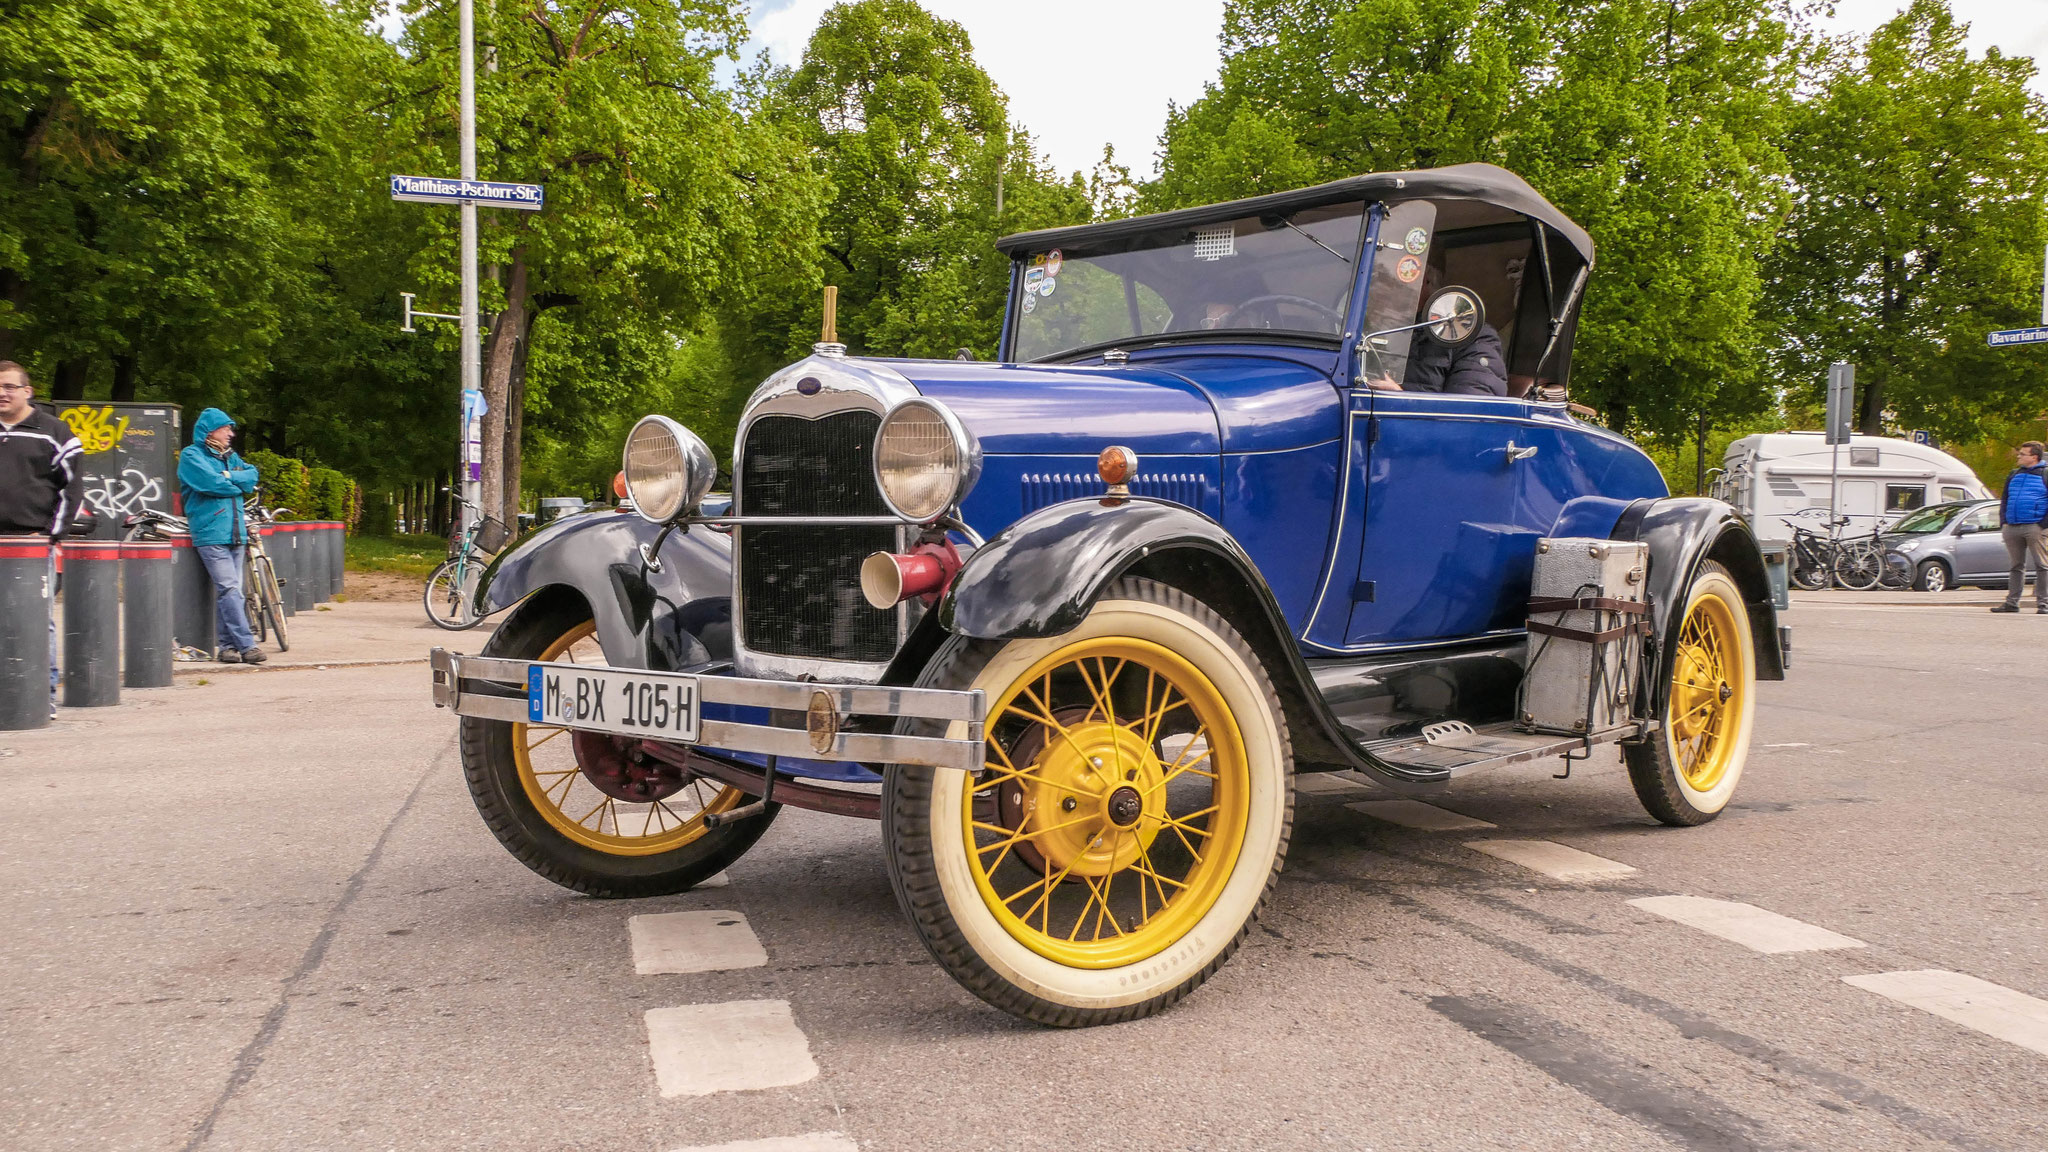 Ford Model A - M-BX-105H